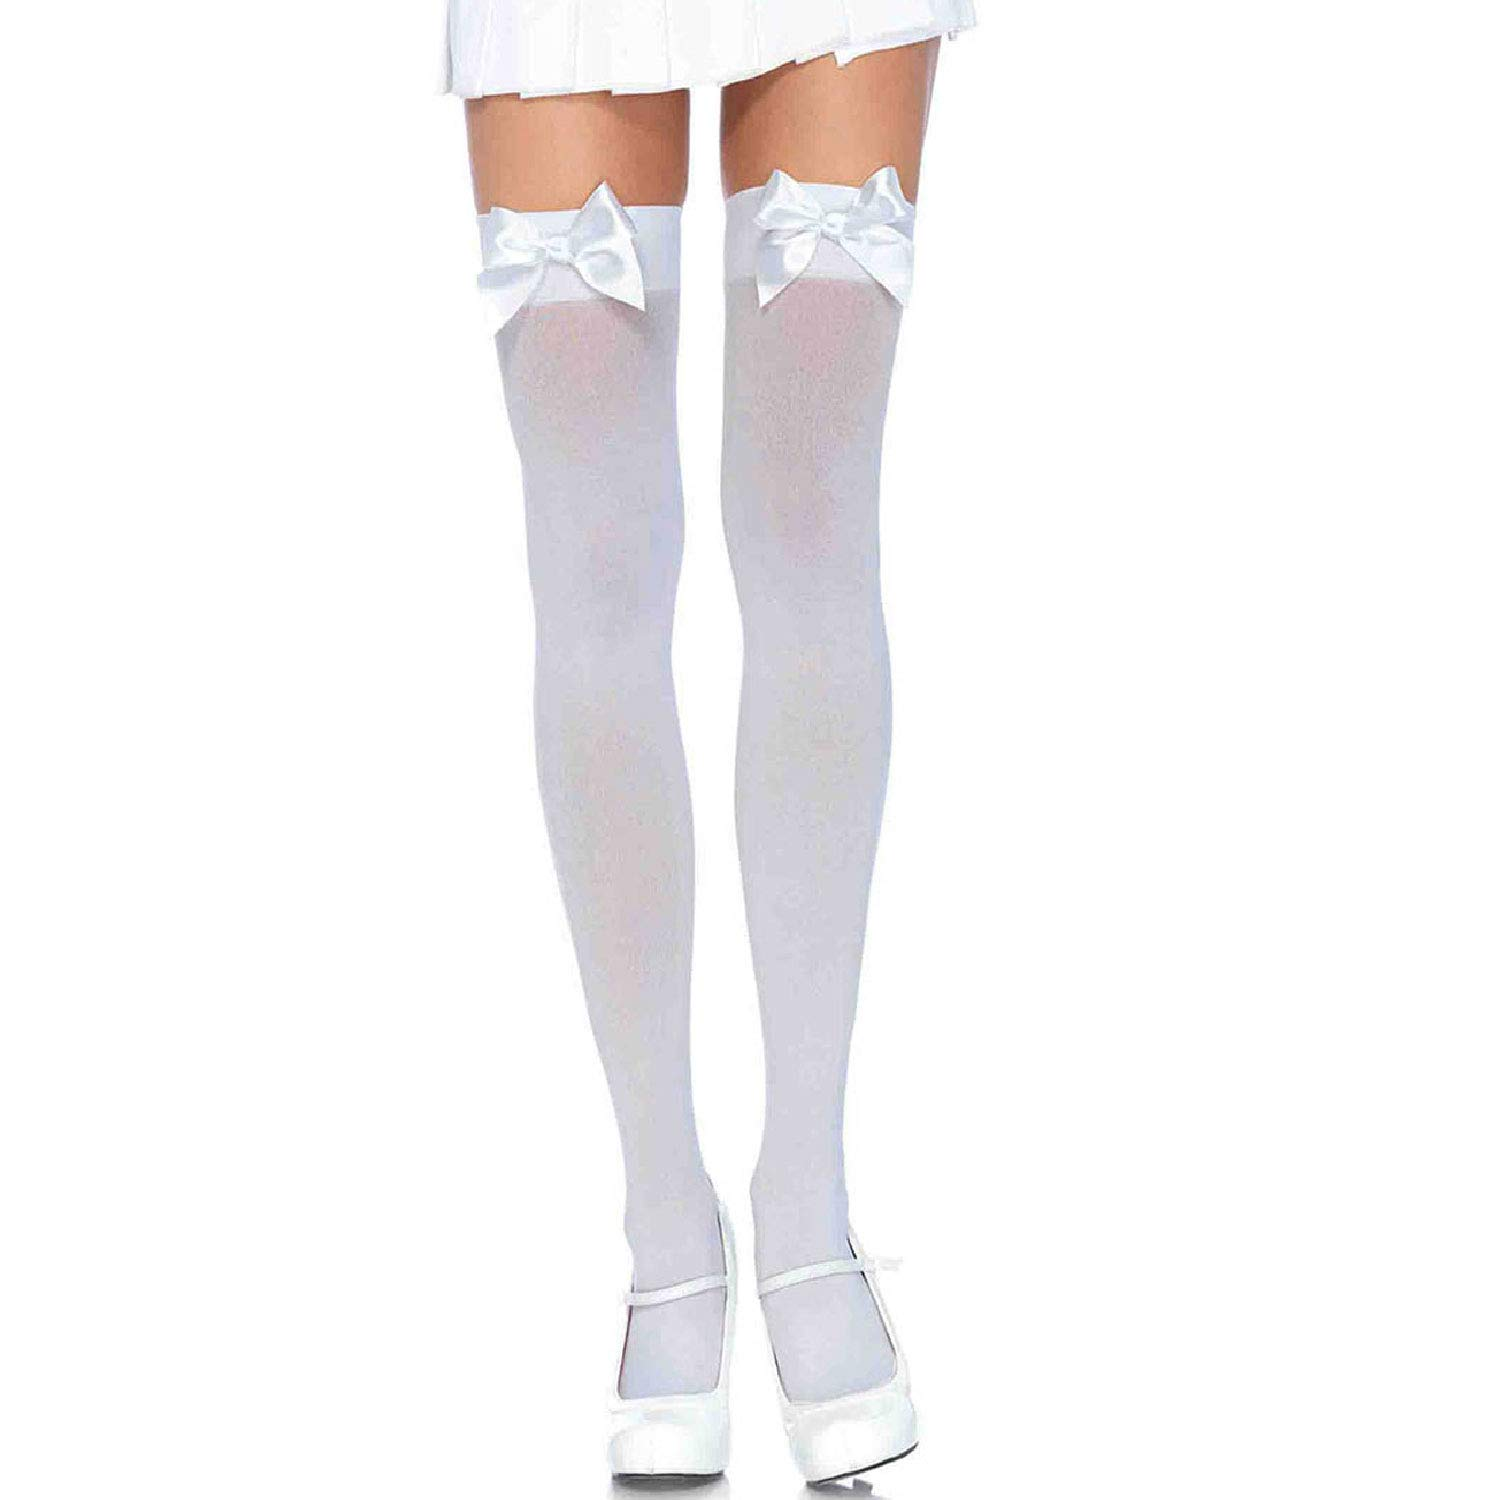 7805037432ec6 Leg Avenue Opaque Suspender Stockings with Bows: Amazon.co.uk: Toys & Games